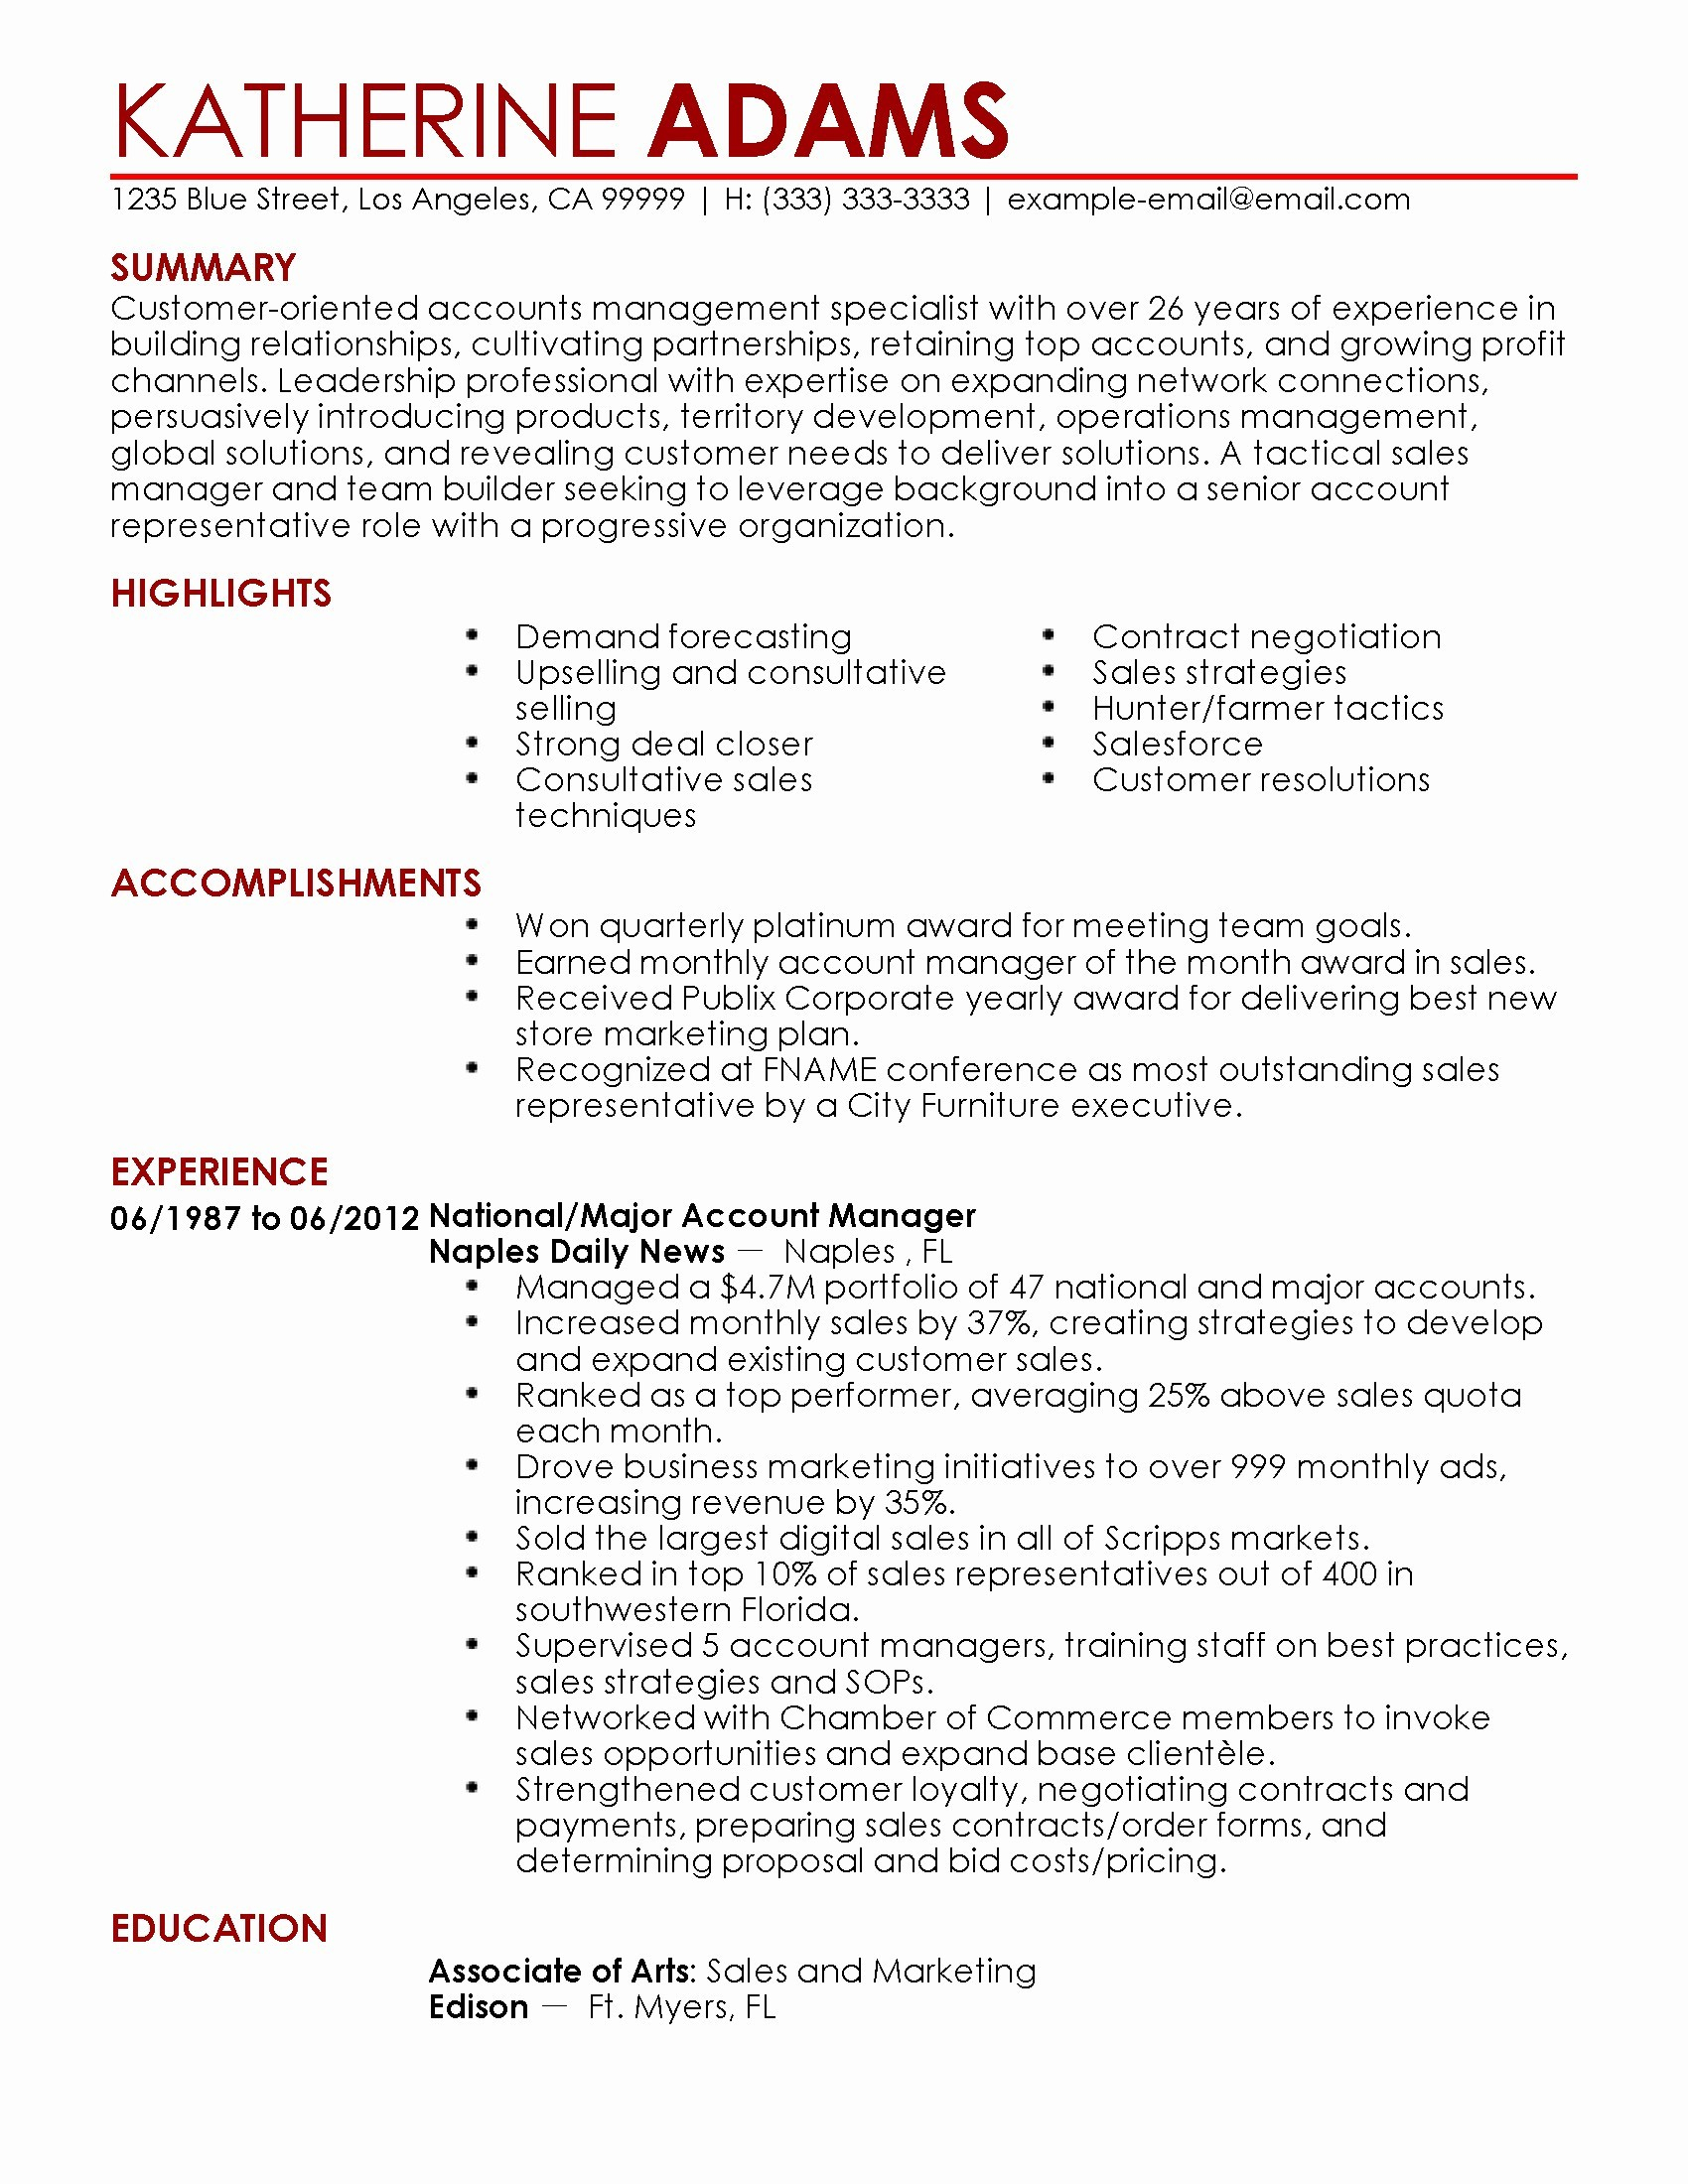 Myperfectresume Cost - My Perfect Resume Cost Inspirational Ressume Template Lovely Type